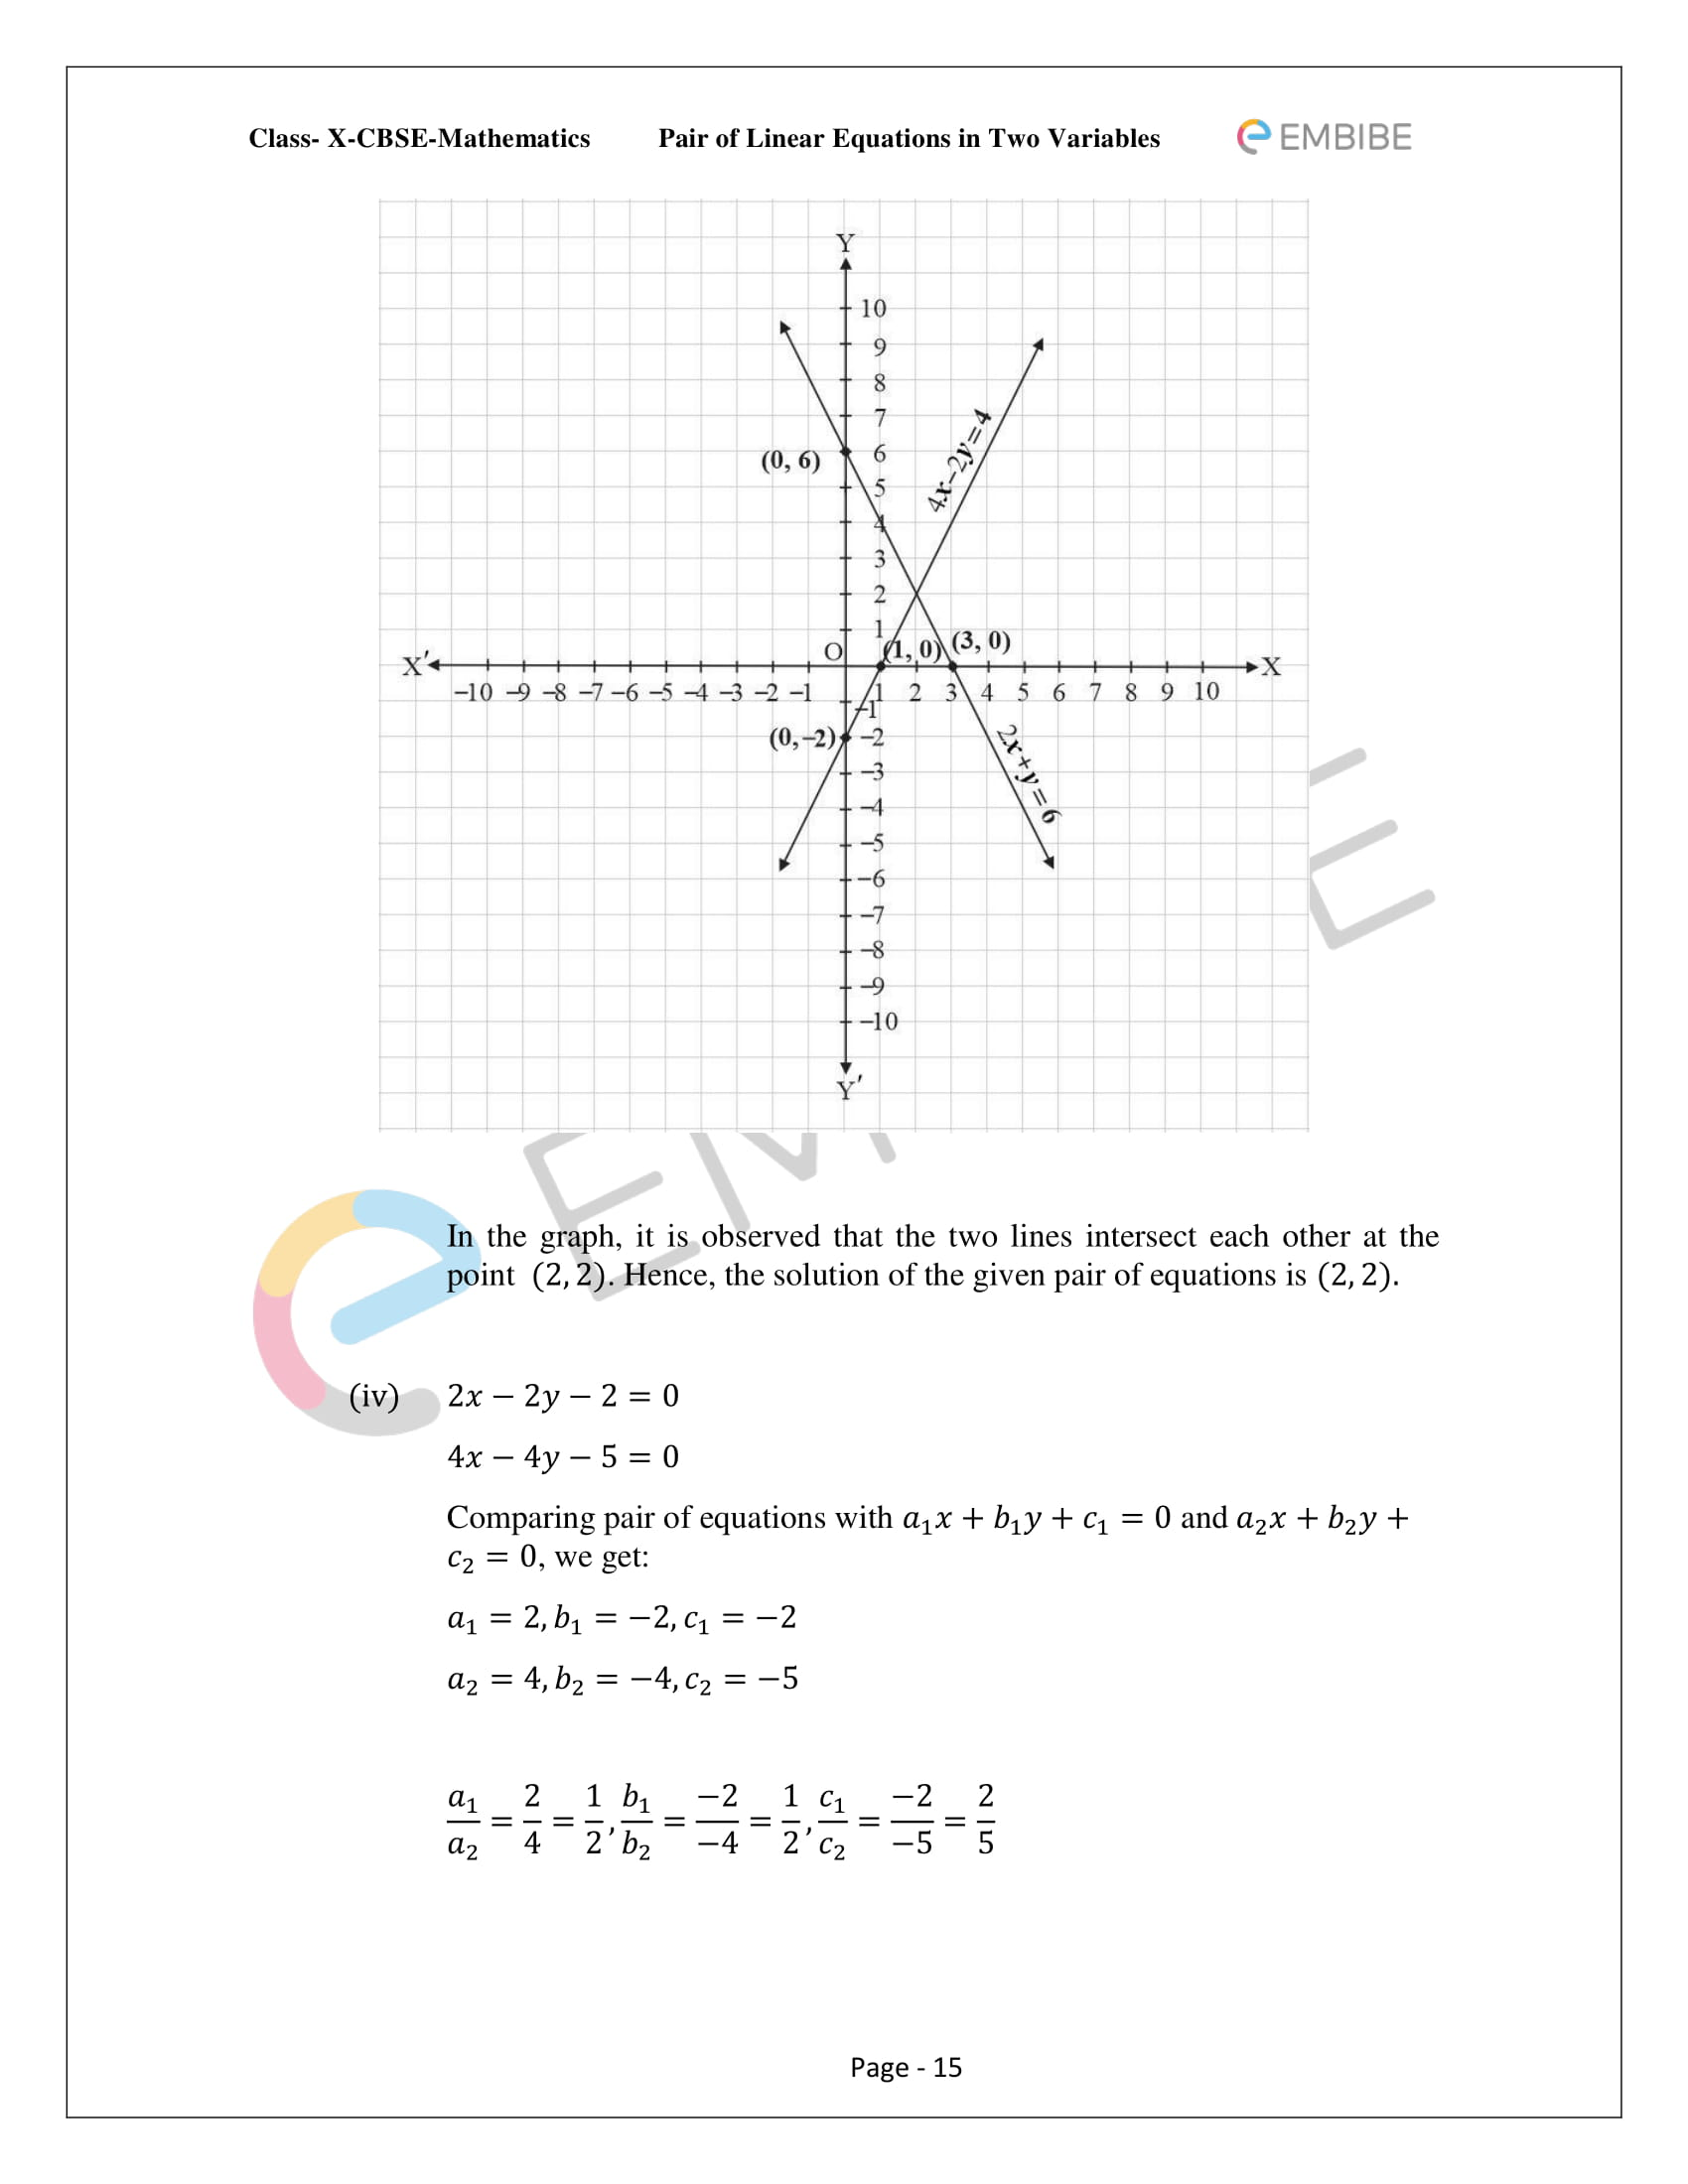 CBSE NCERT Solutions For Class 10 Maths Chapter 3 - Pair of Linear Equations In Two Variables - 15